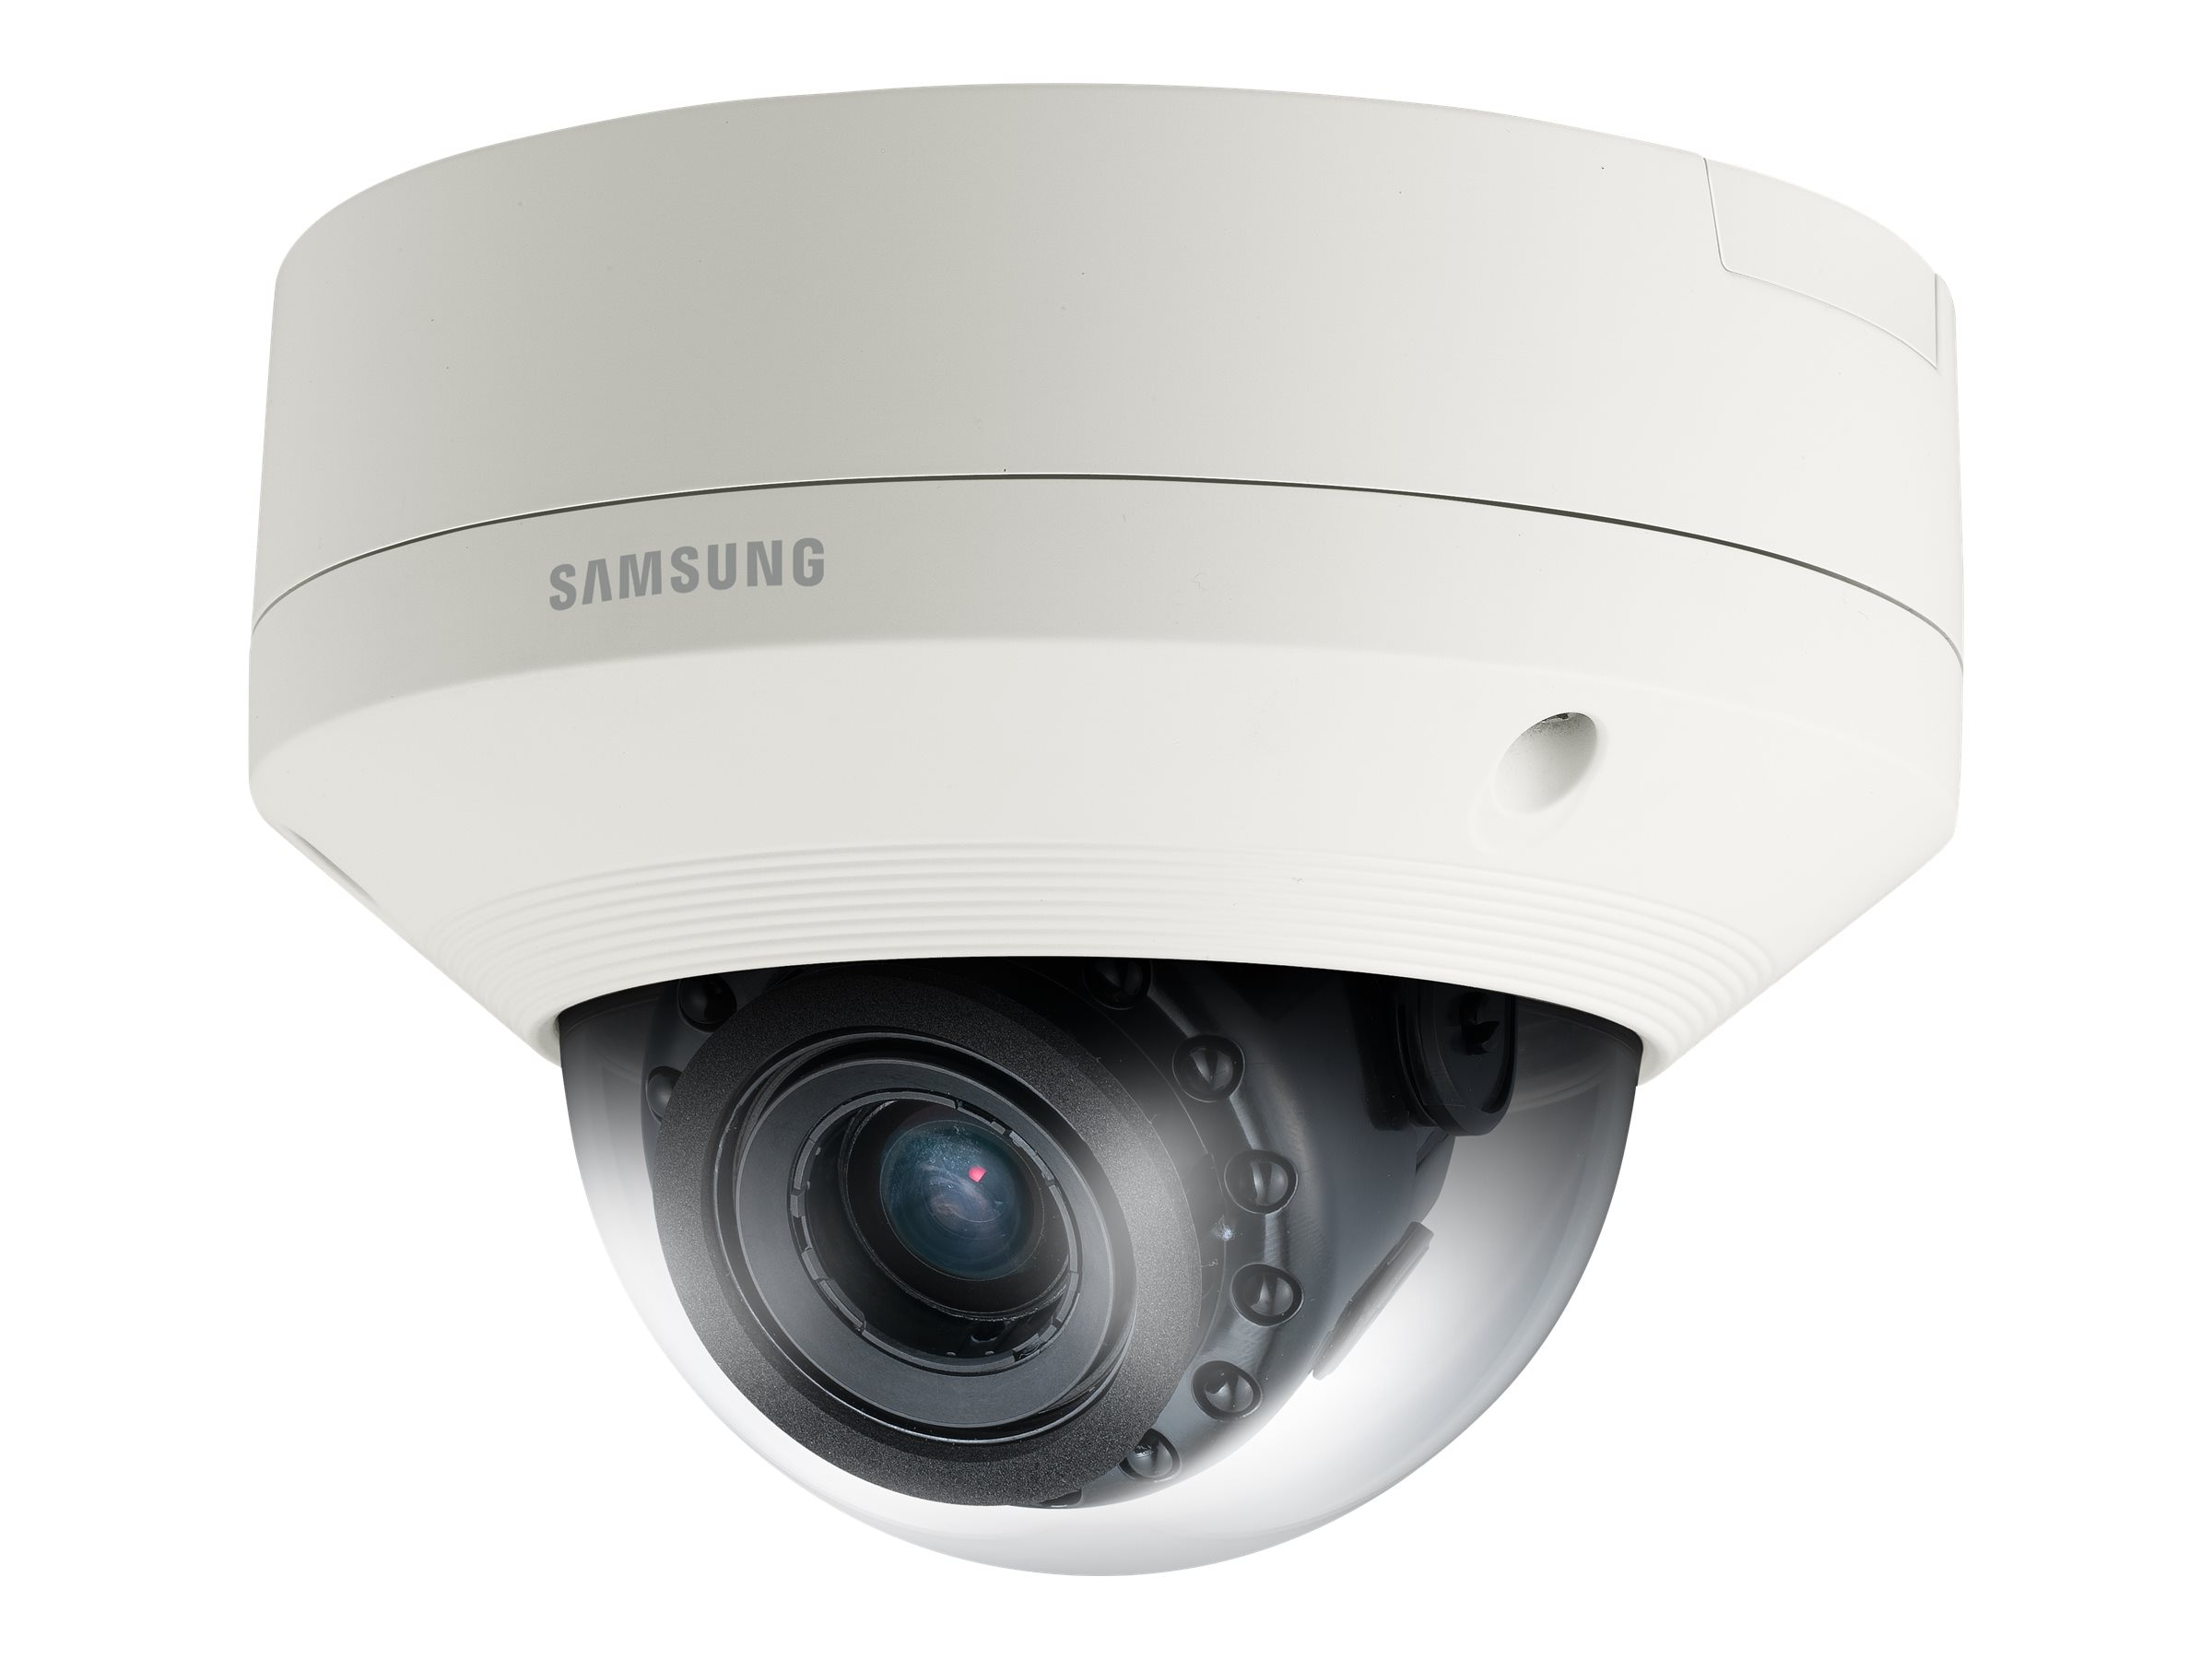 Samsung 2MP Full HD Vandal-Resistant Network IR Dome Camera